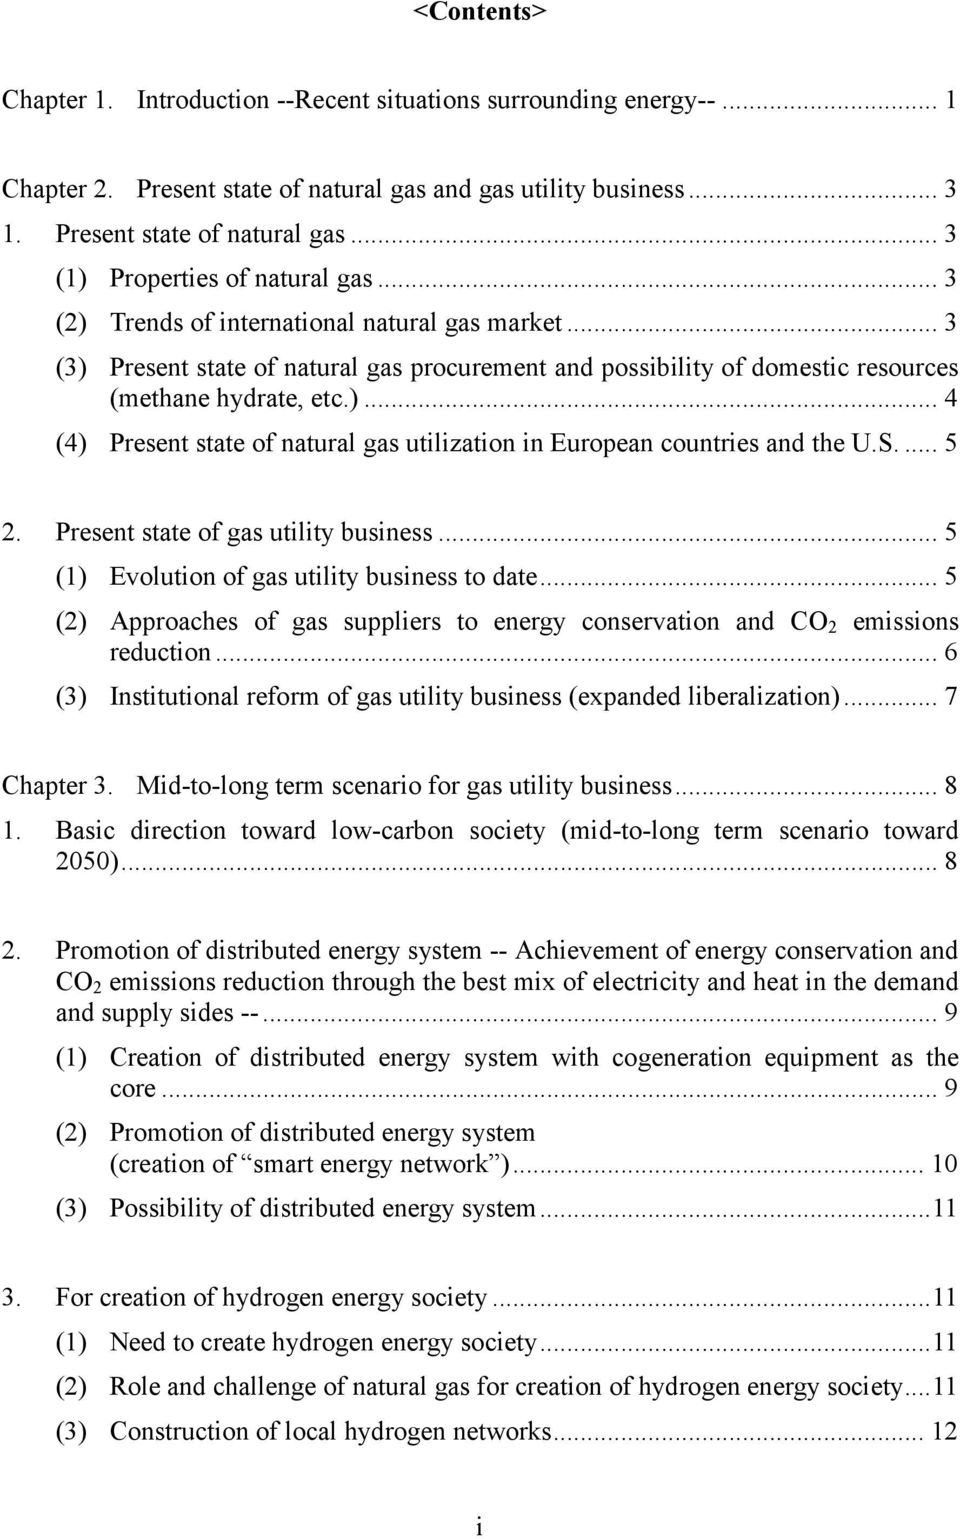 S.... 5 2. Present state of gas utility business... 5 (1) Evolution of gas utility business to date... 5 (2) Approaches of gas suppliers to energy conservation and CO 2 emissions reduction.